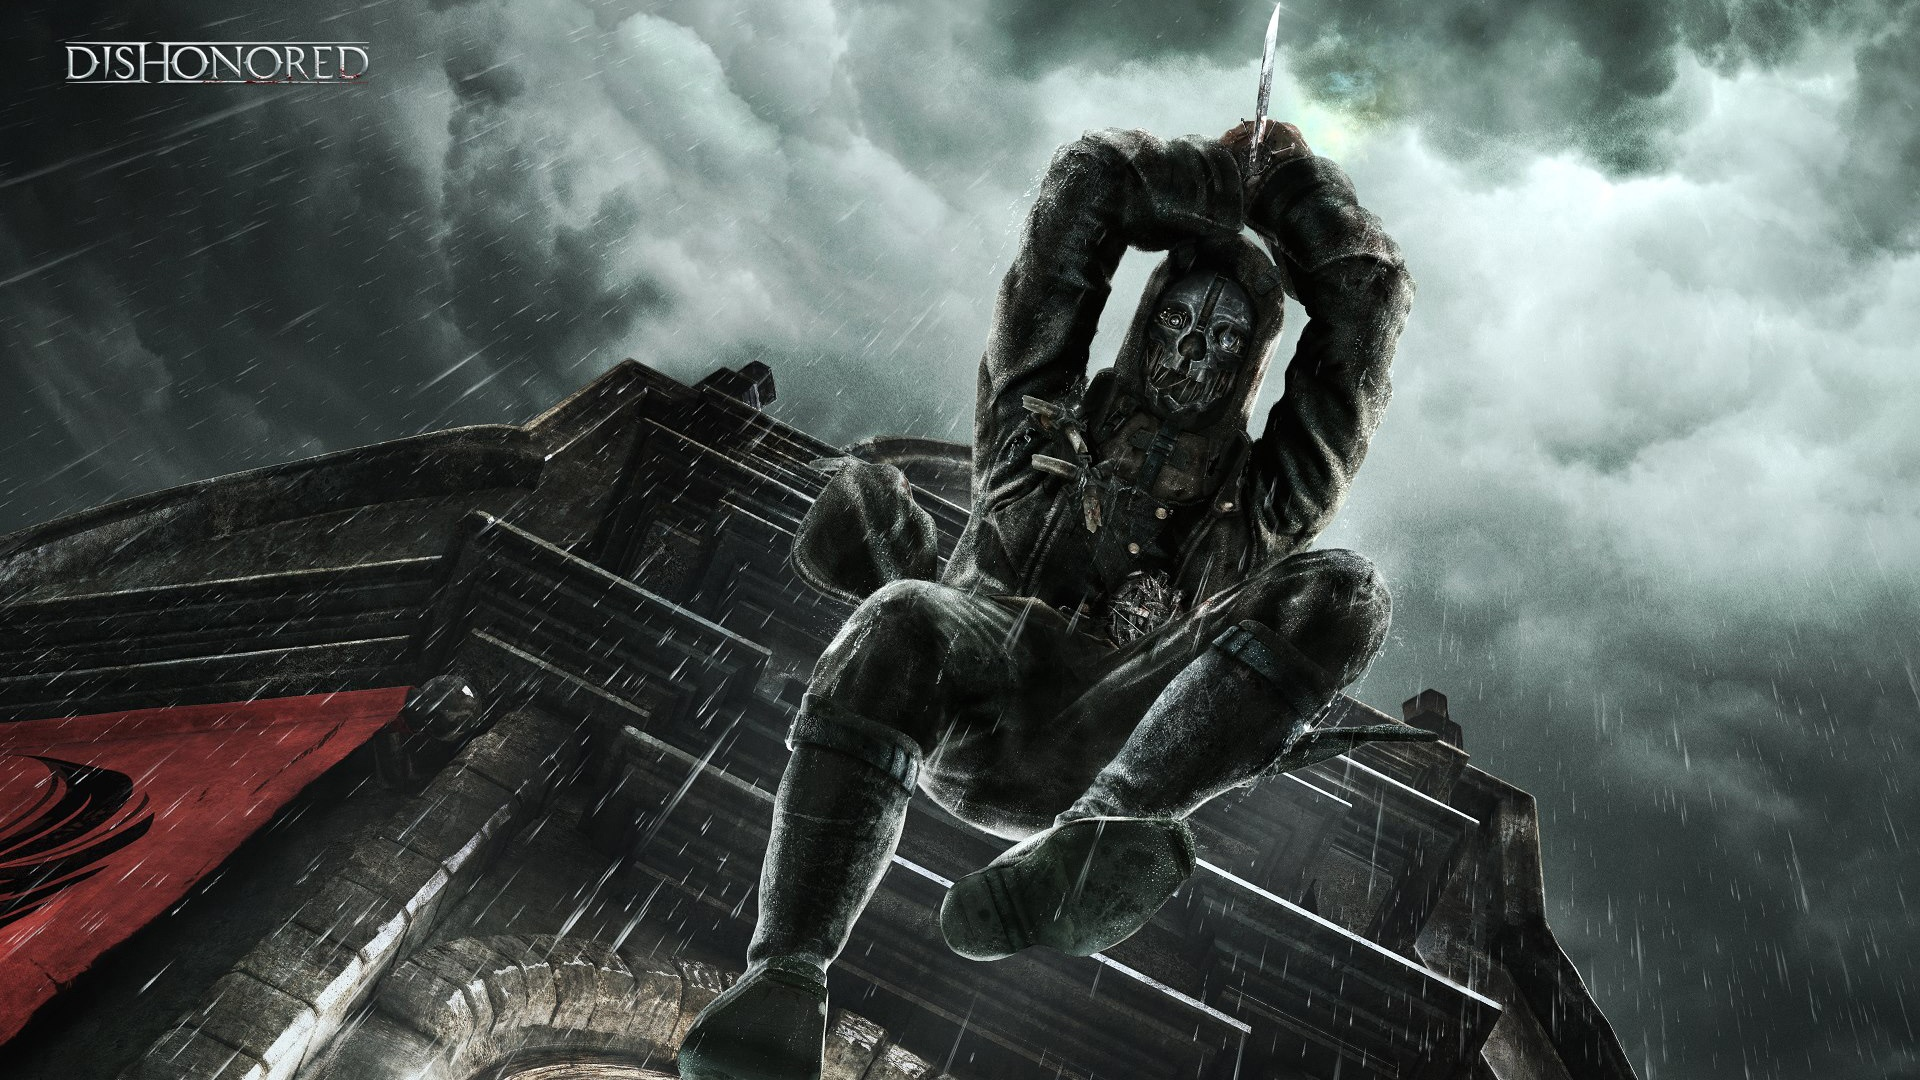 Dishonored Video Game Wallpapers HD Wallpapers 1920x1080